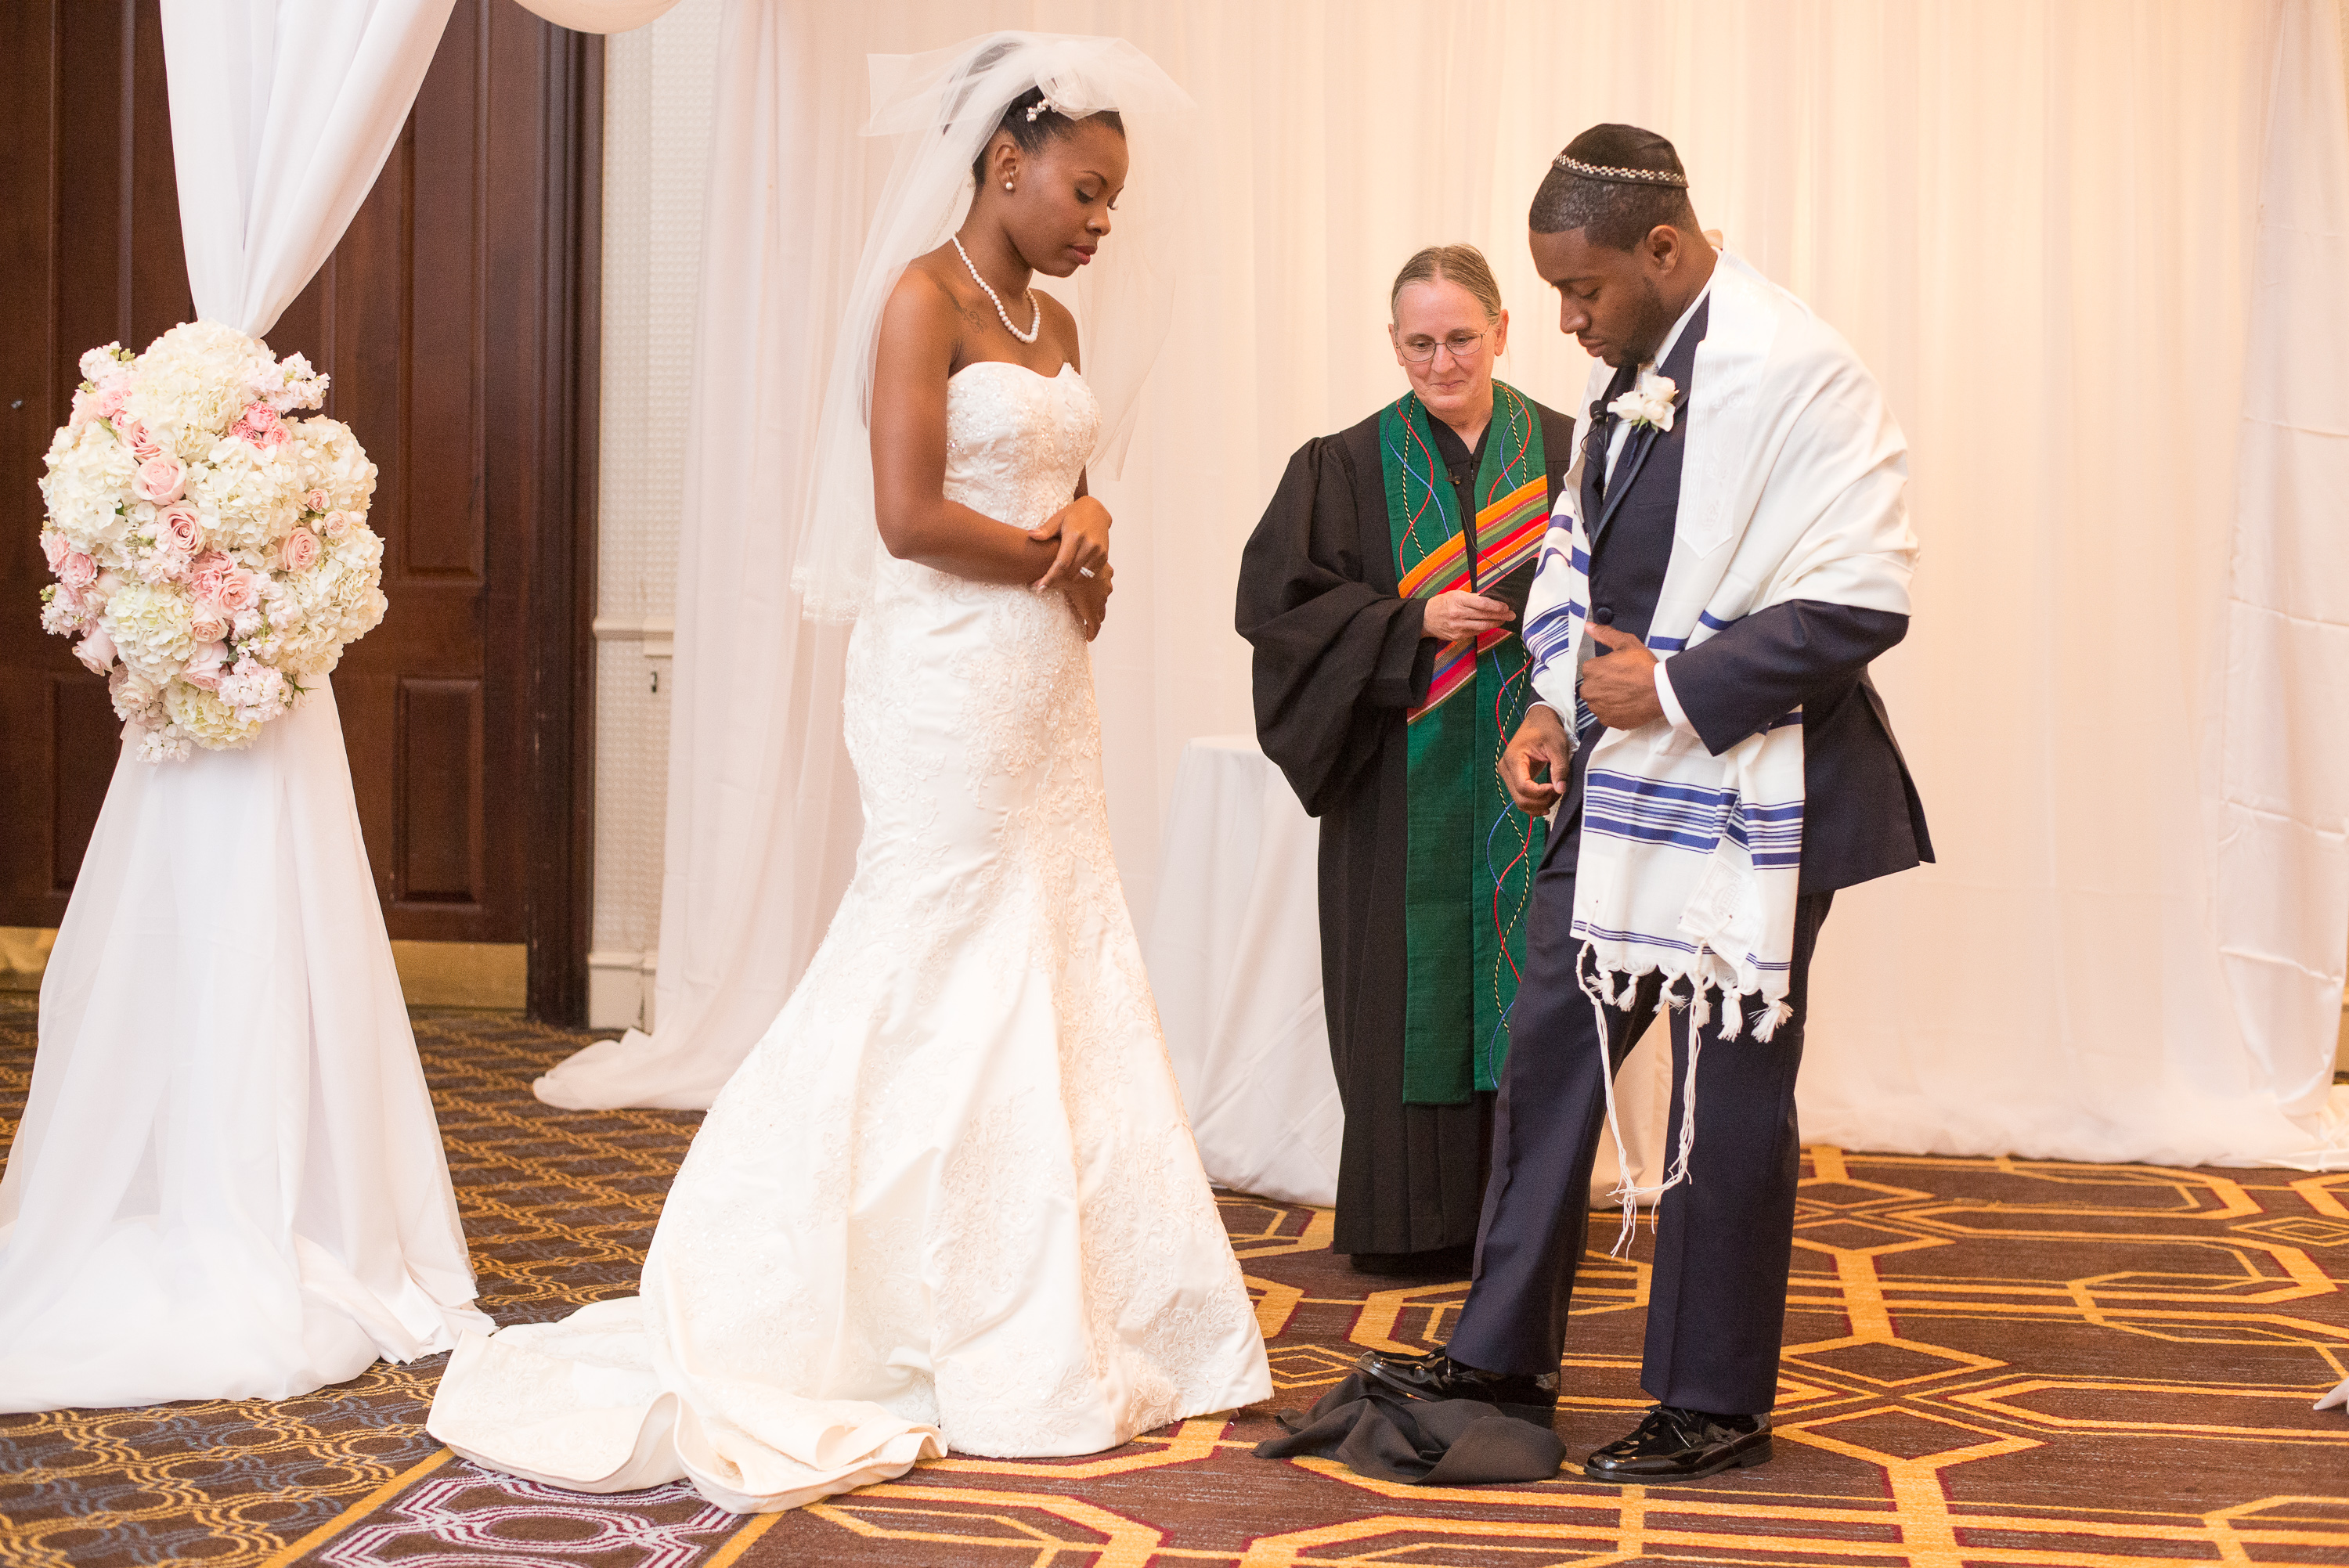 dallas-jewish-wedding-donnell-perry-photo-14